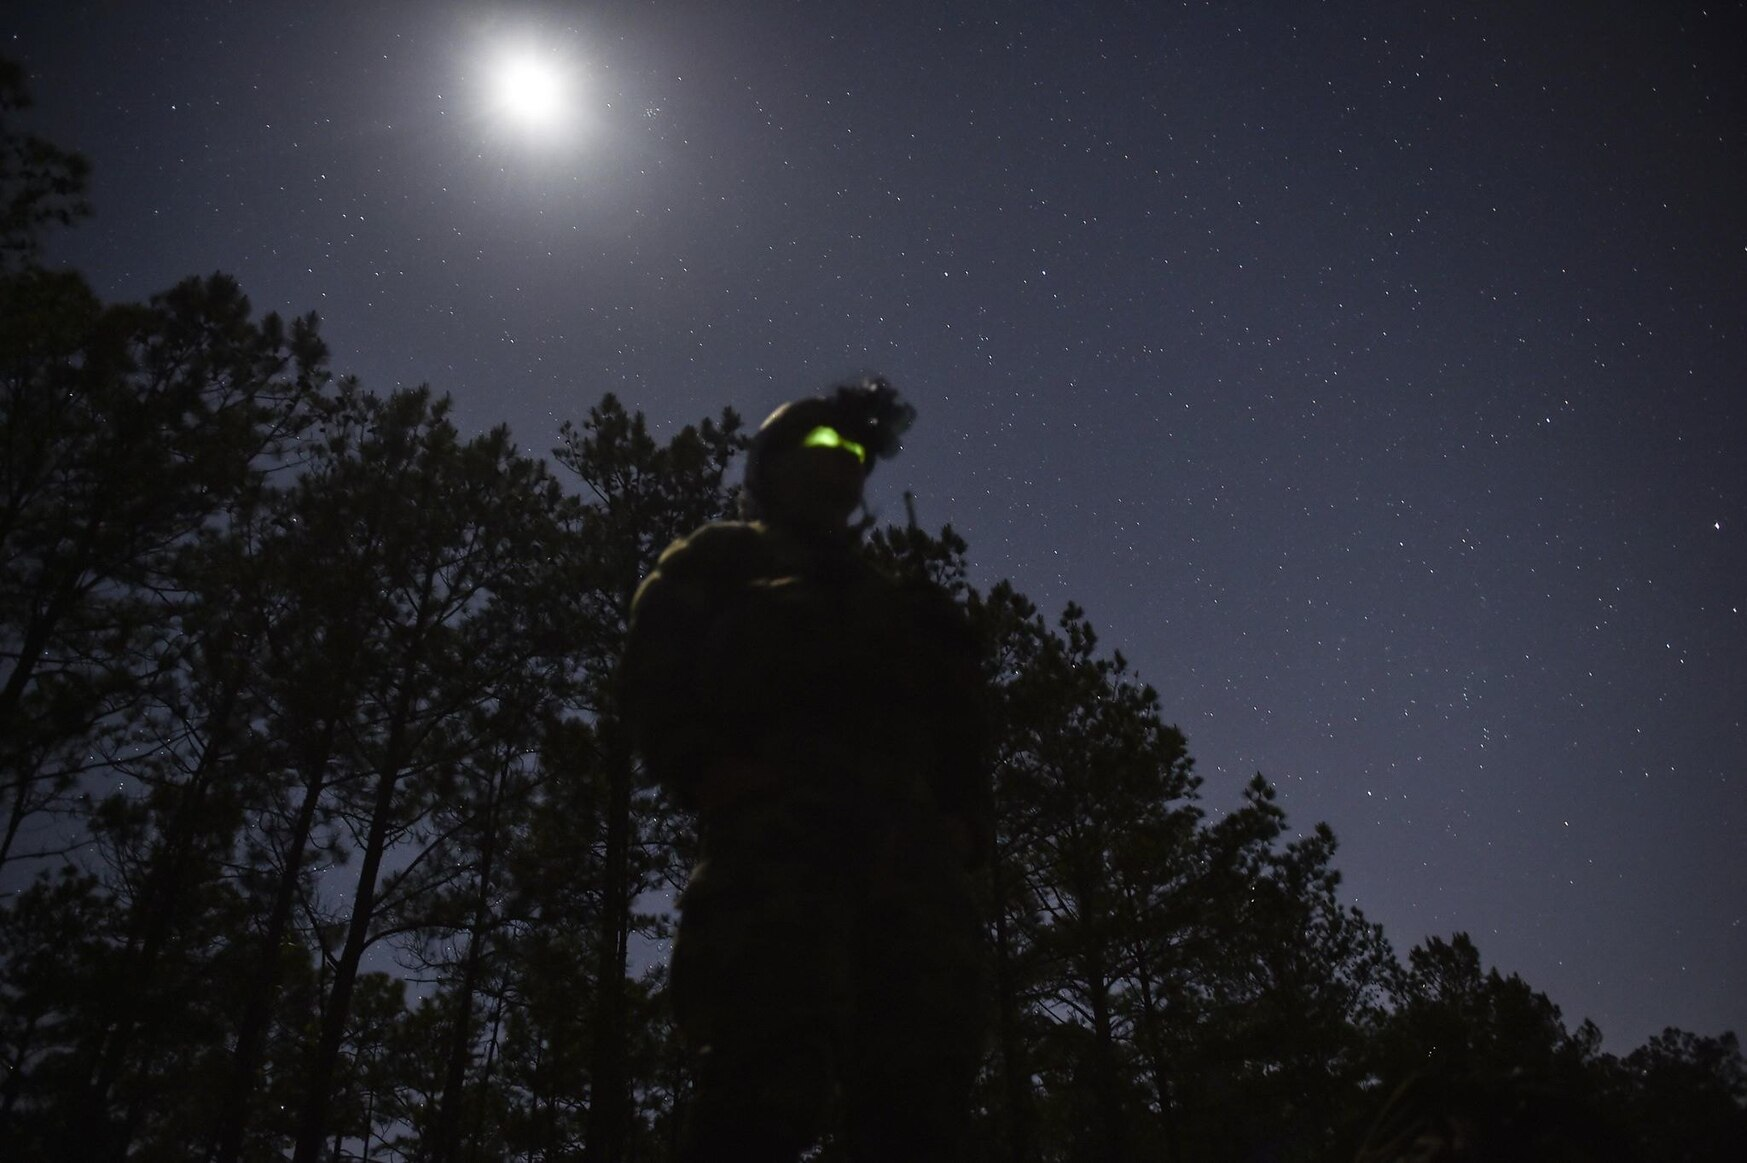 Night labs are currently only in use by Marine Corps aviation units, but ground combat elements within the Corps have expressed interest in acquiring the systems to refine night vision skills. (Lance Cpl. Rhita Daniel/Marine Corps)